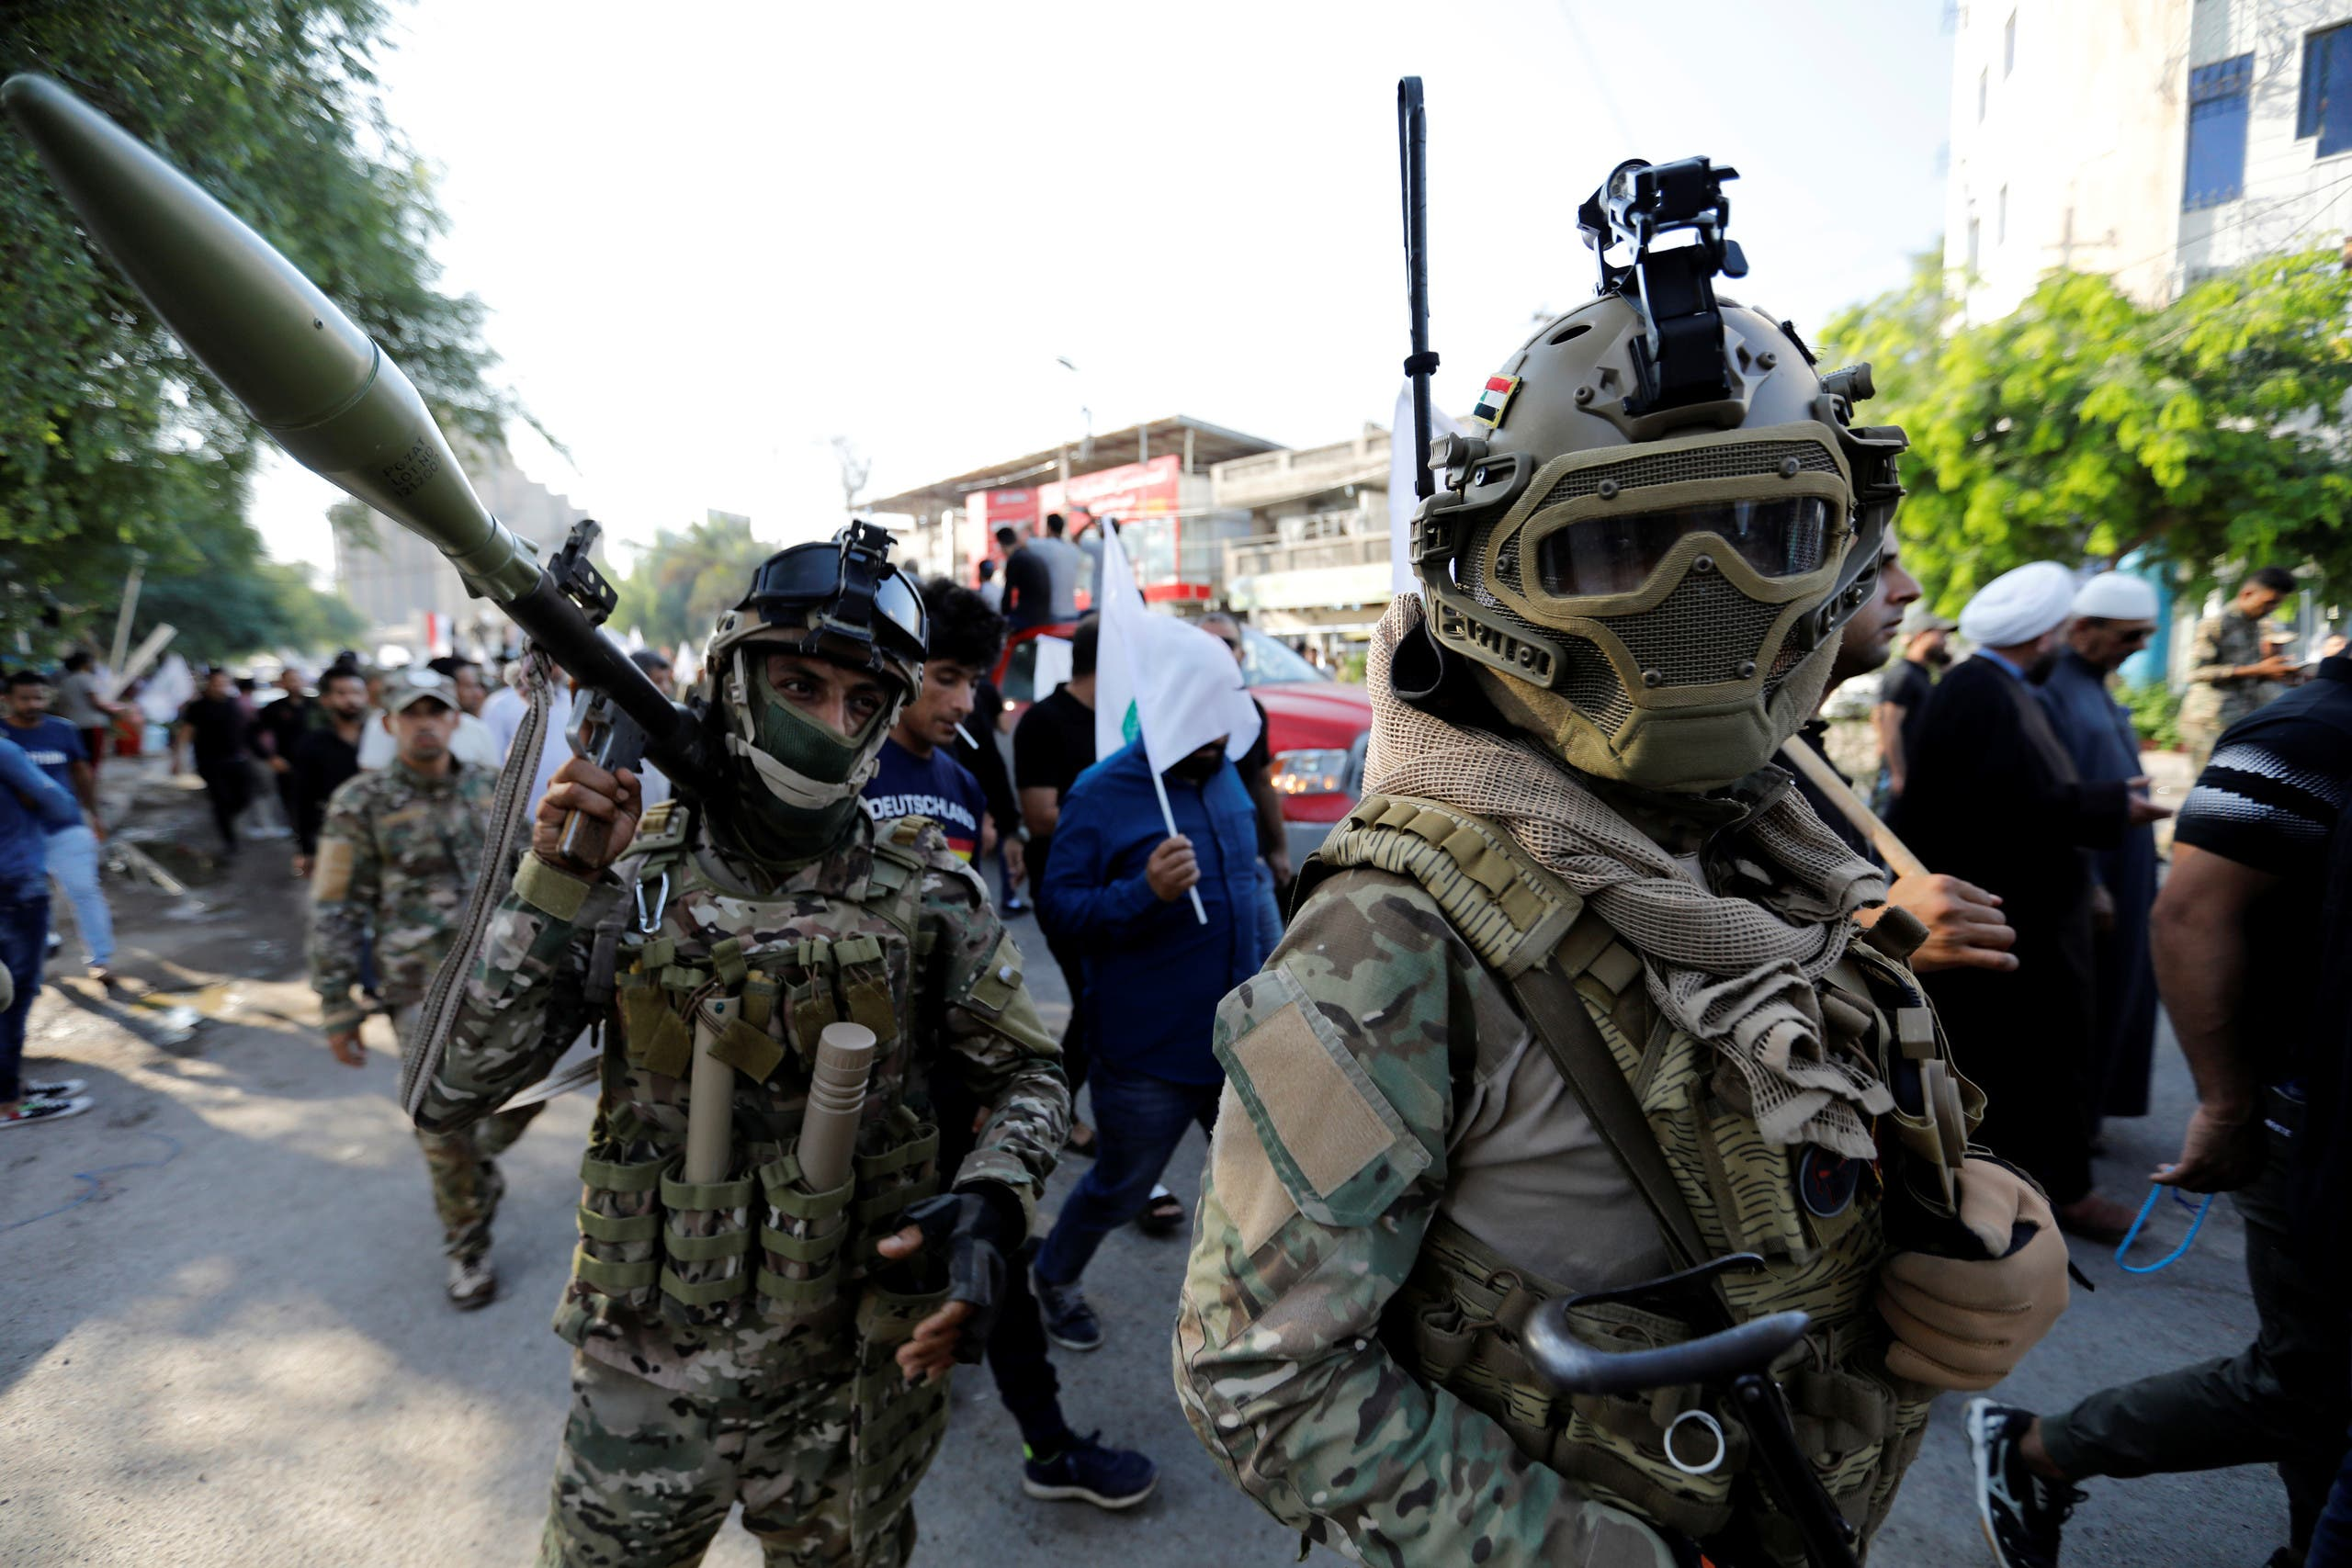 Iraqi Popular Mobilisation Forces (Hashid Shaabi) are seen at a march during the funeral of members of Shi'ite group Asaib Ahl al-Haq, who were killed when protesters attacked the group's office during anti-government protests, in Baghdad, Iraq, on October 26, 2019. (Reuters)